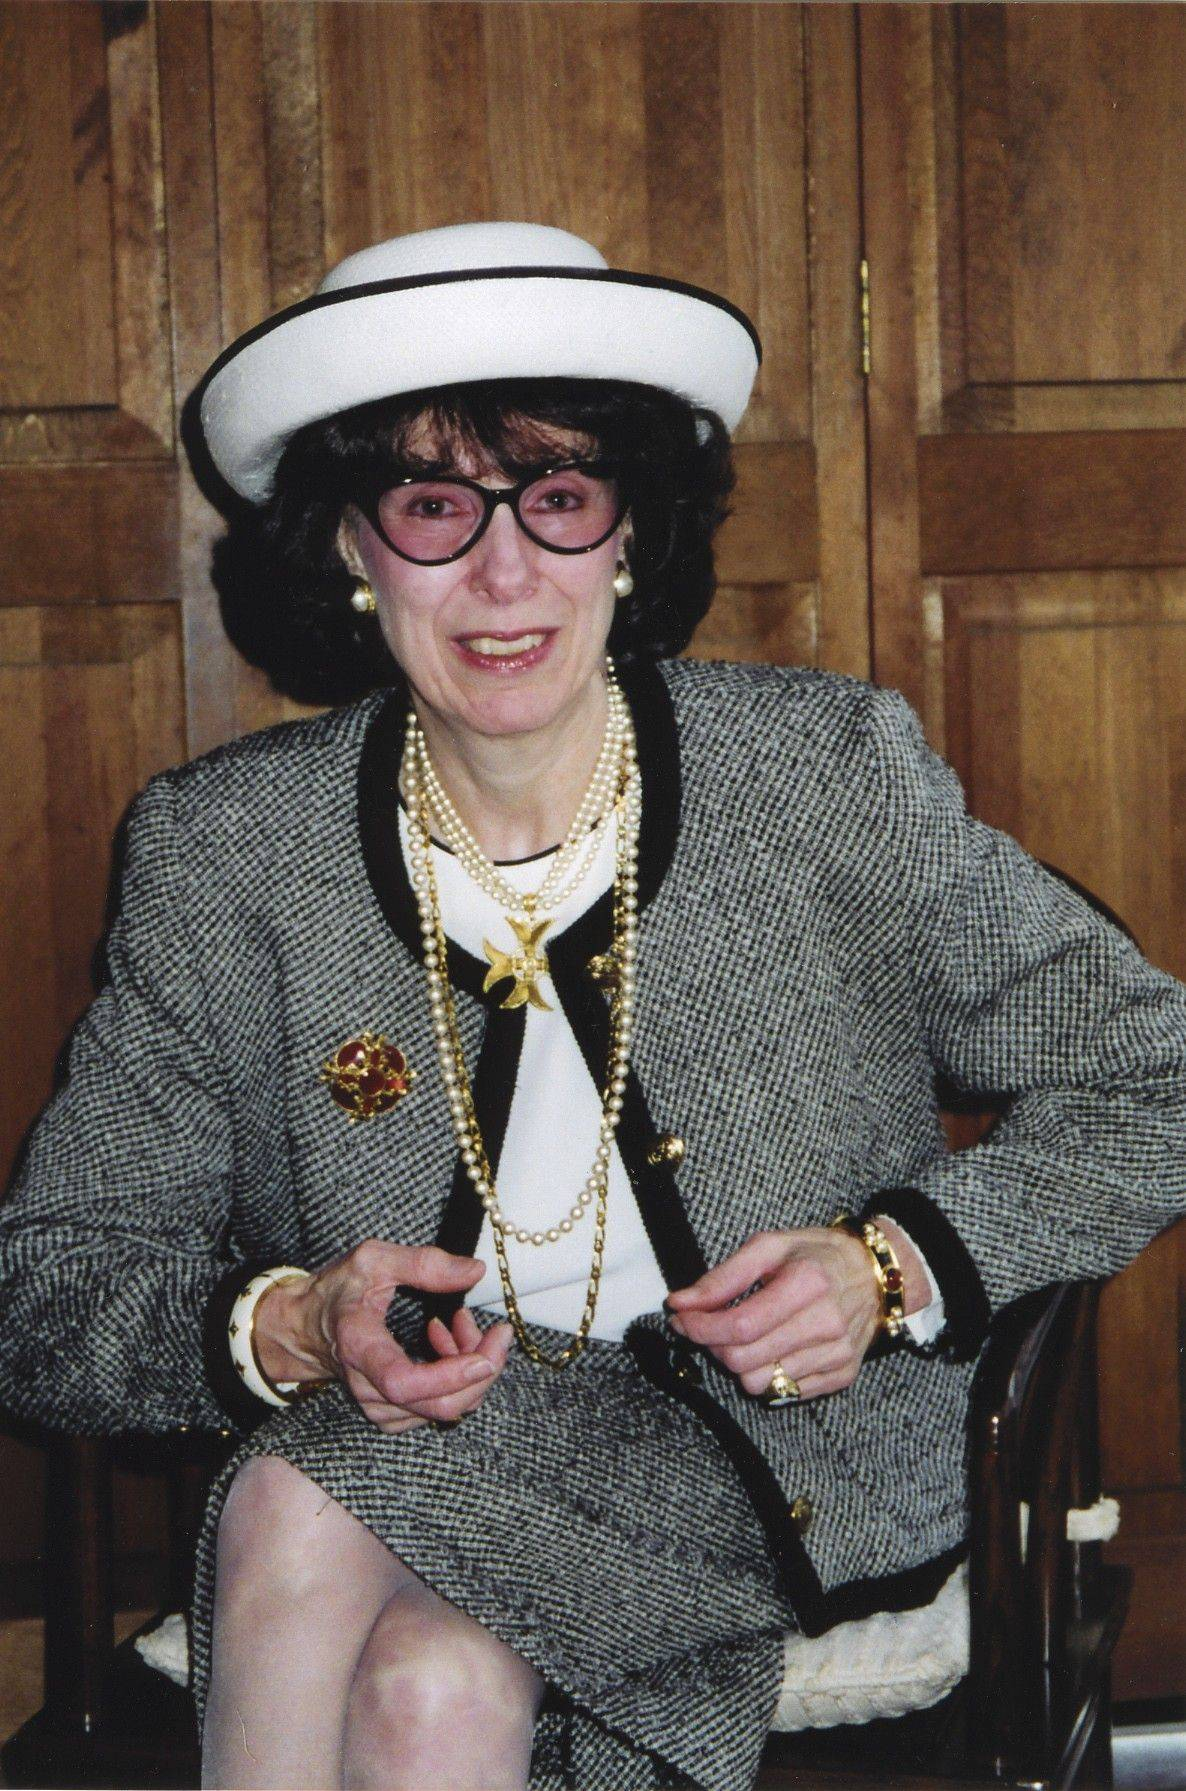 Annette Baldwin will portray legendary fashion designer Coco Chanel during a March appearance at the Lisle Library as part of The Big Read program.